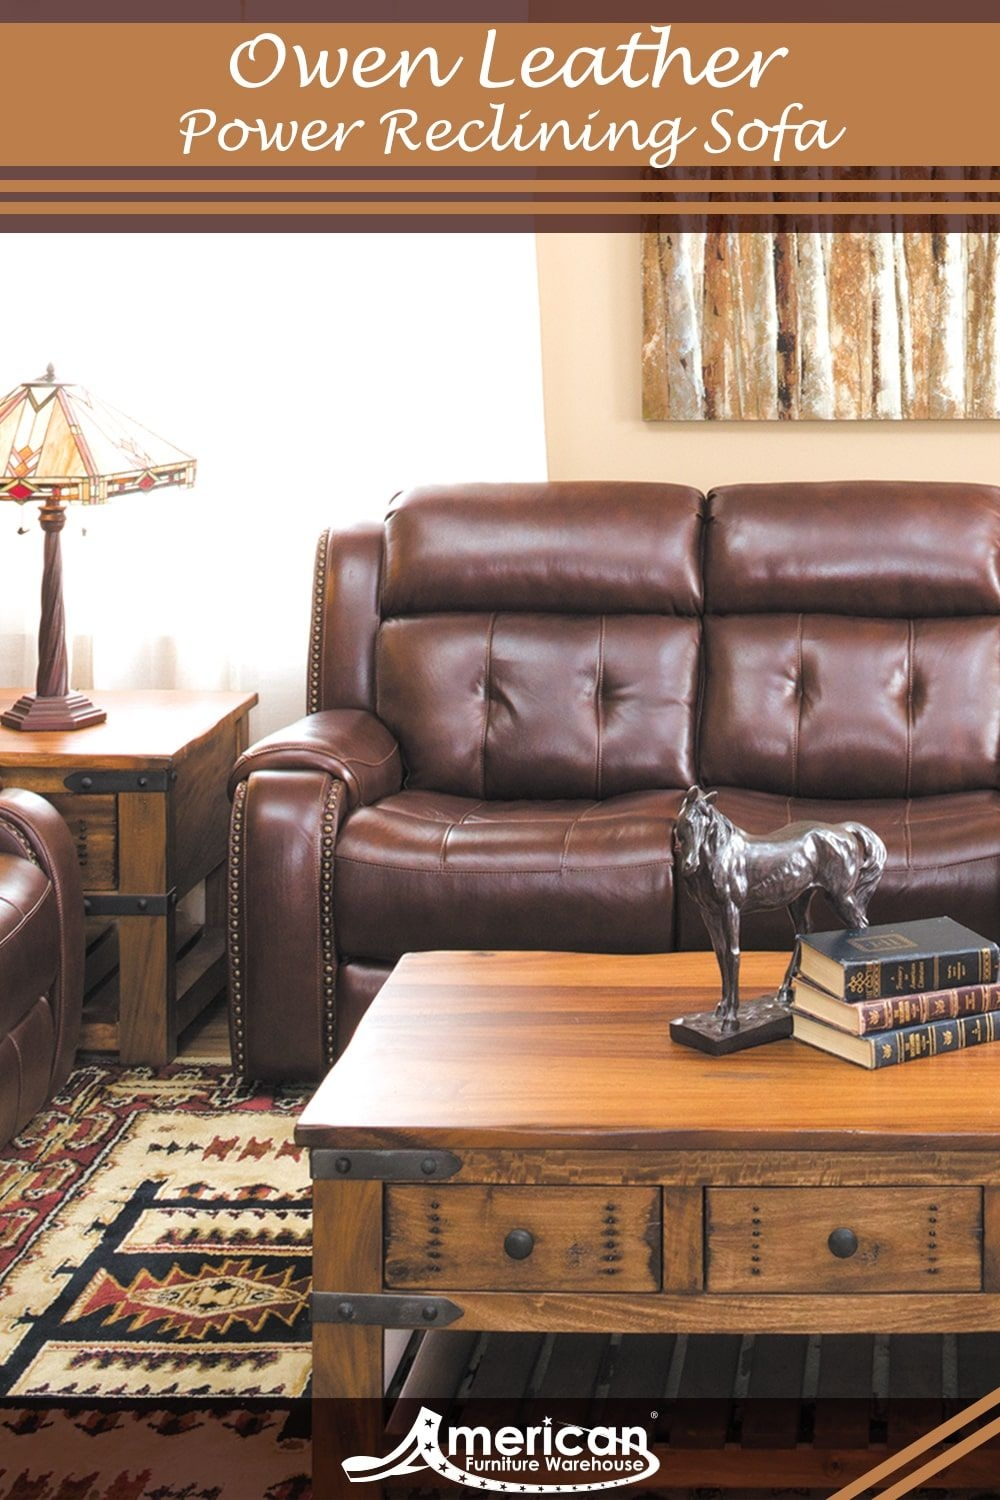 13eed f3d1e78af2c0db29cdb37e on Traditional Style Leather Sofas id=1005431